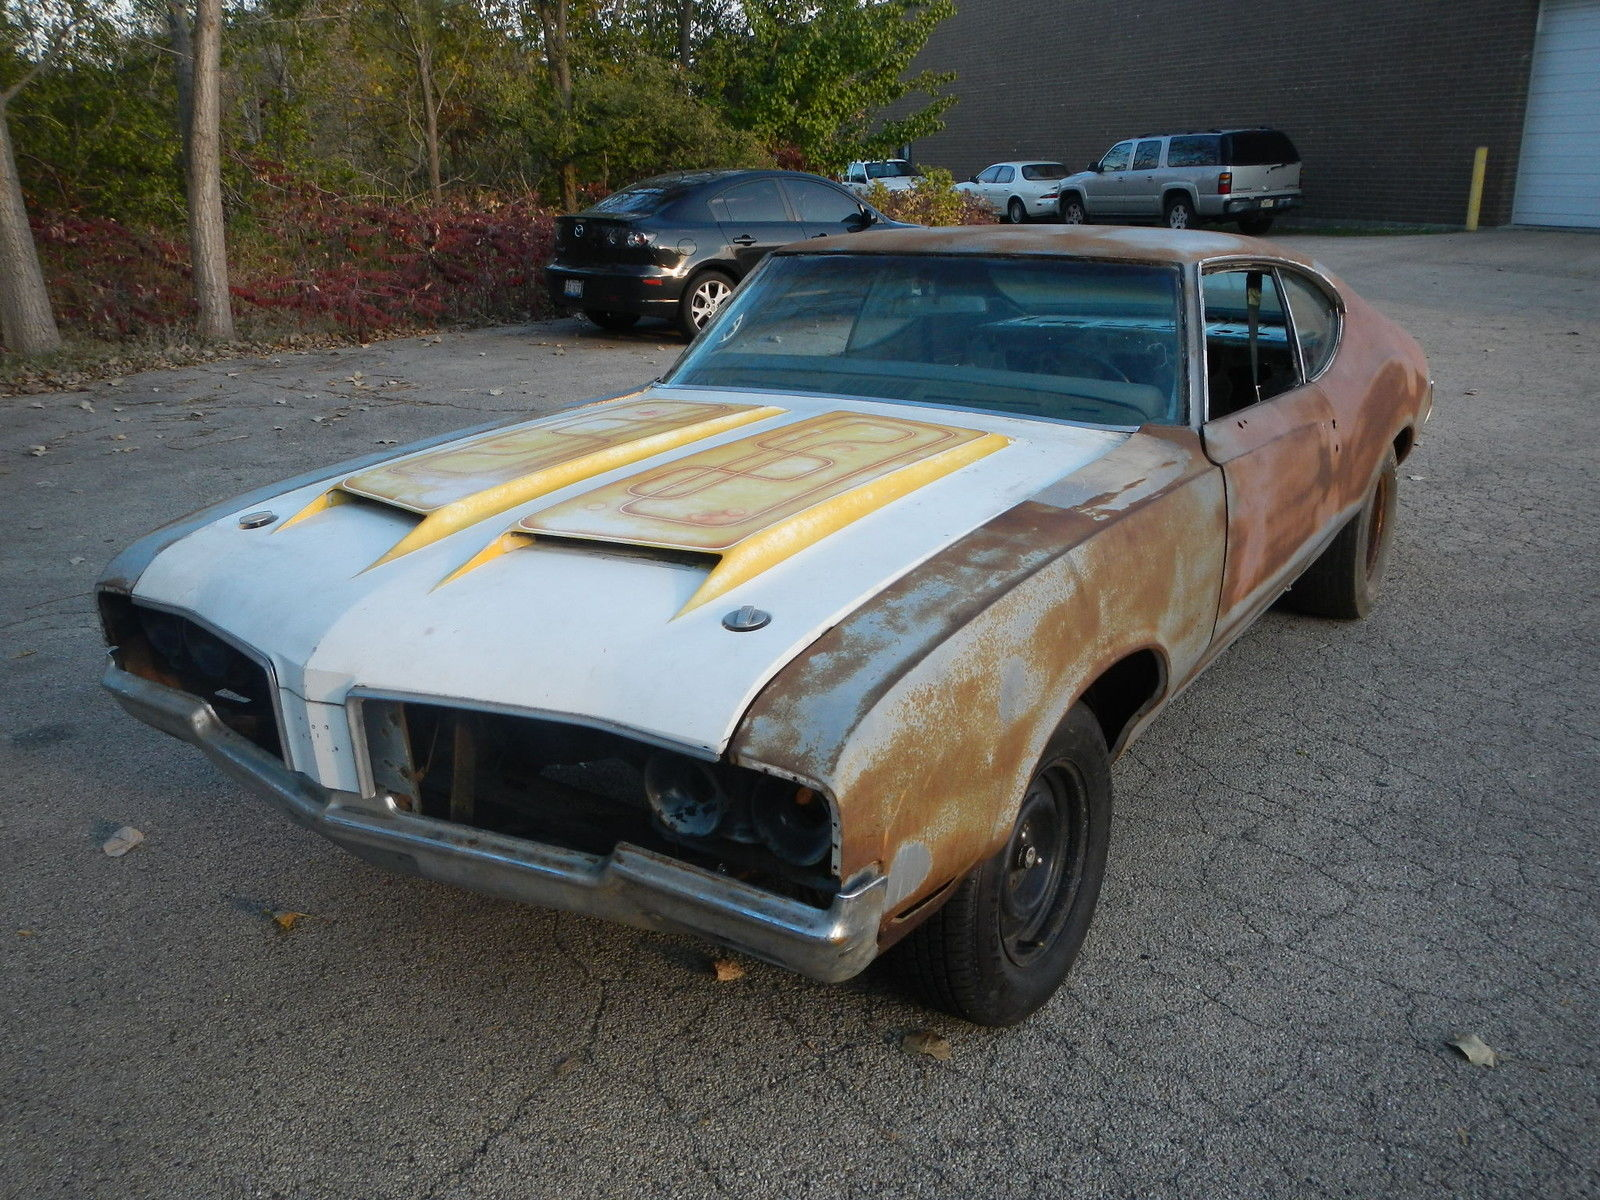 1970 Oldsmobile 442 W-30 - Project Cars For Sale